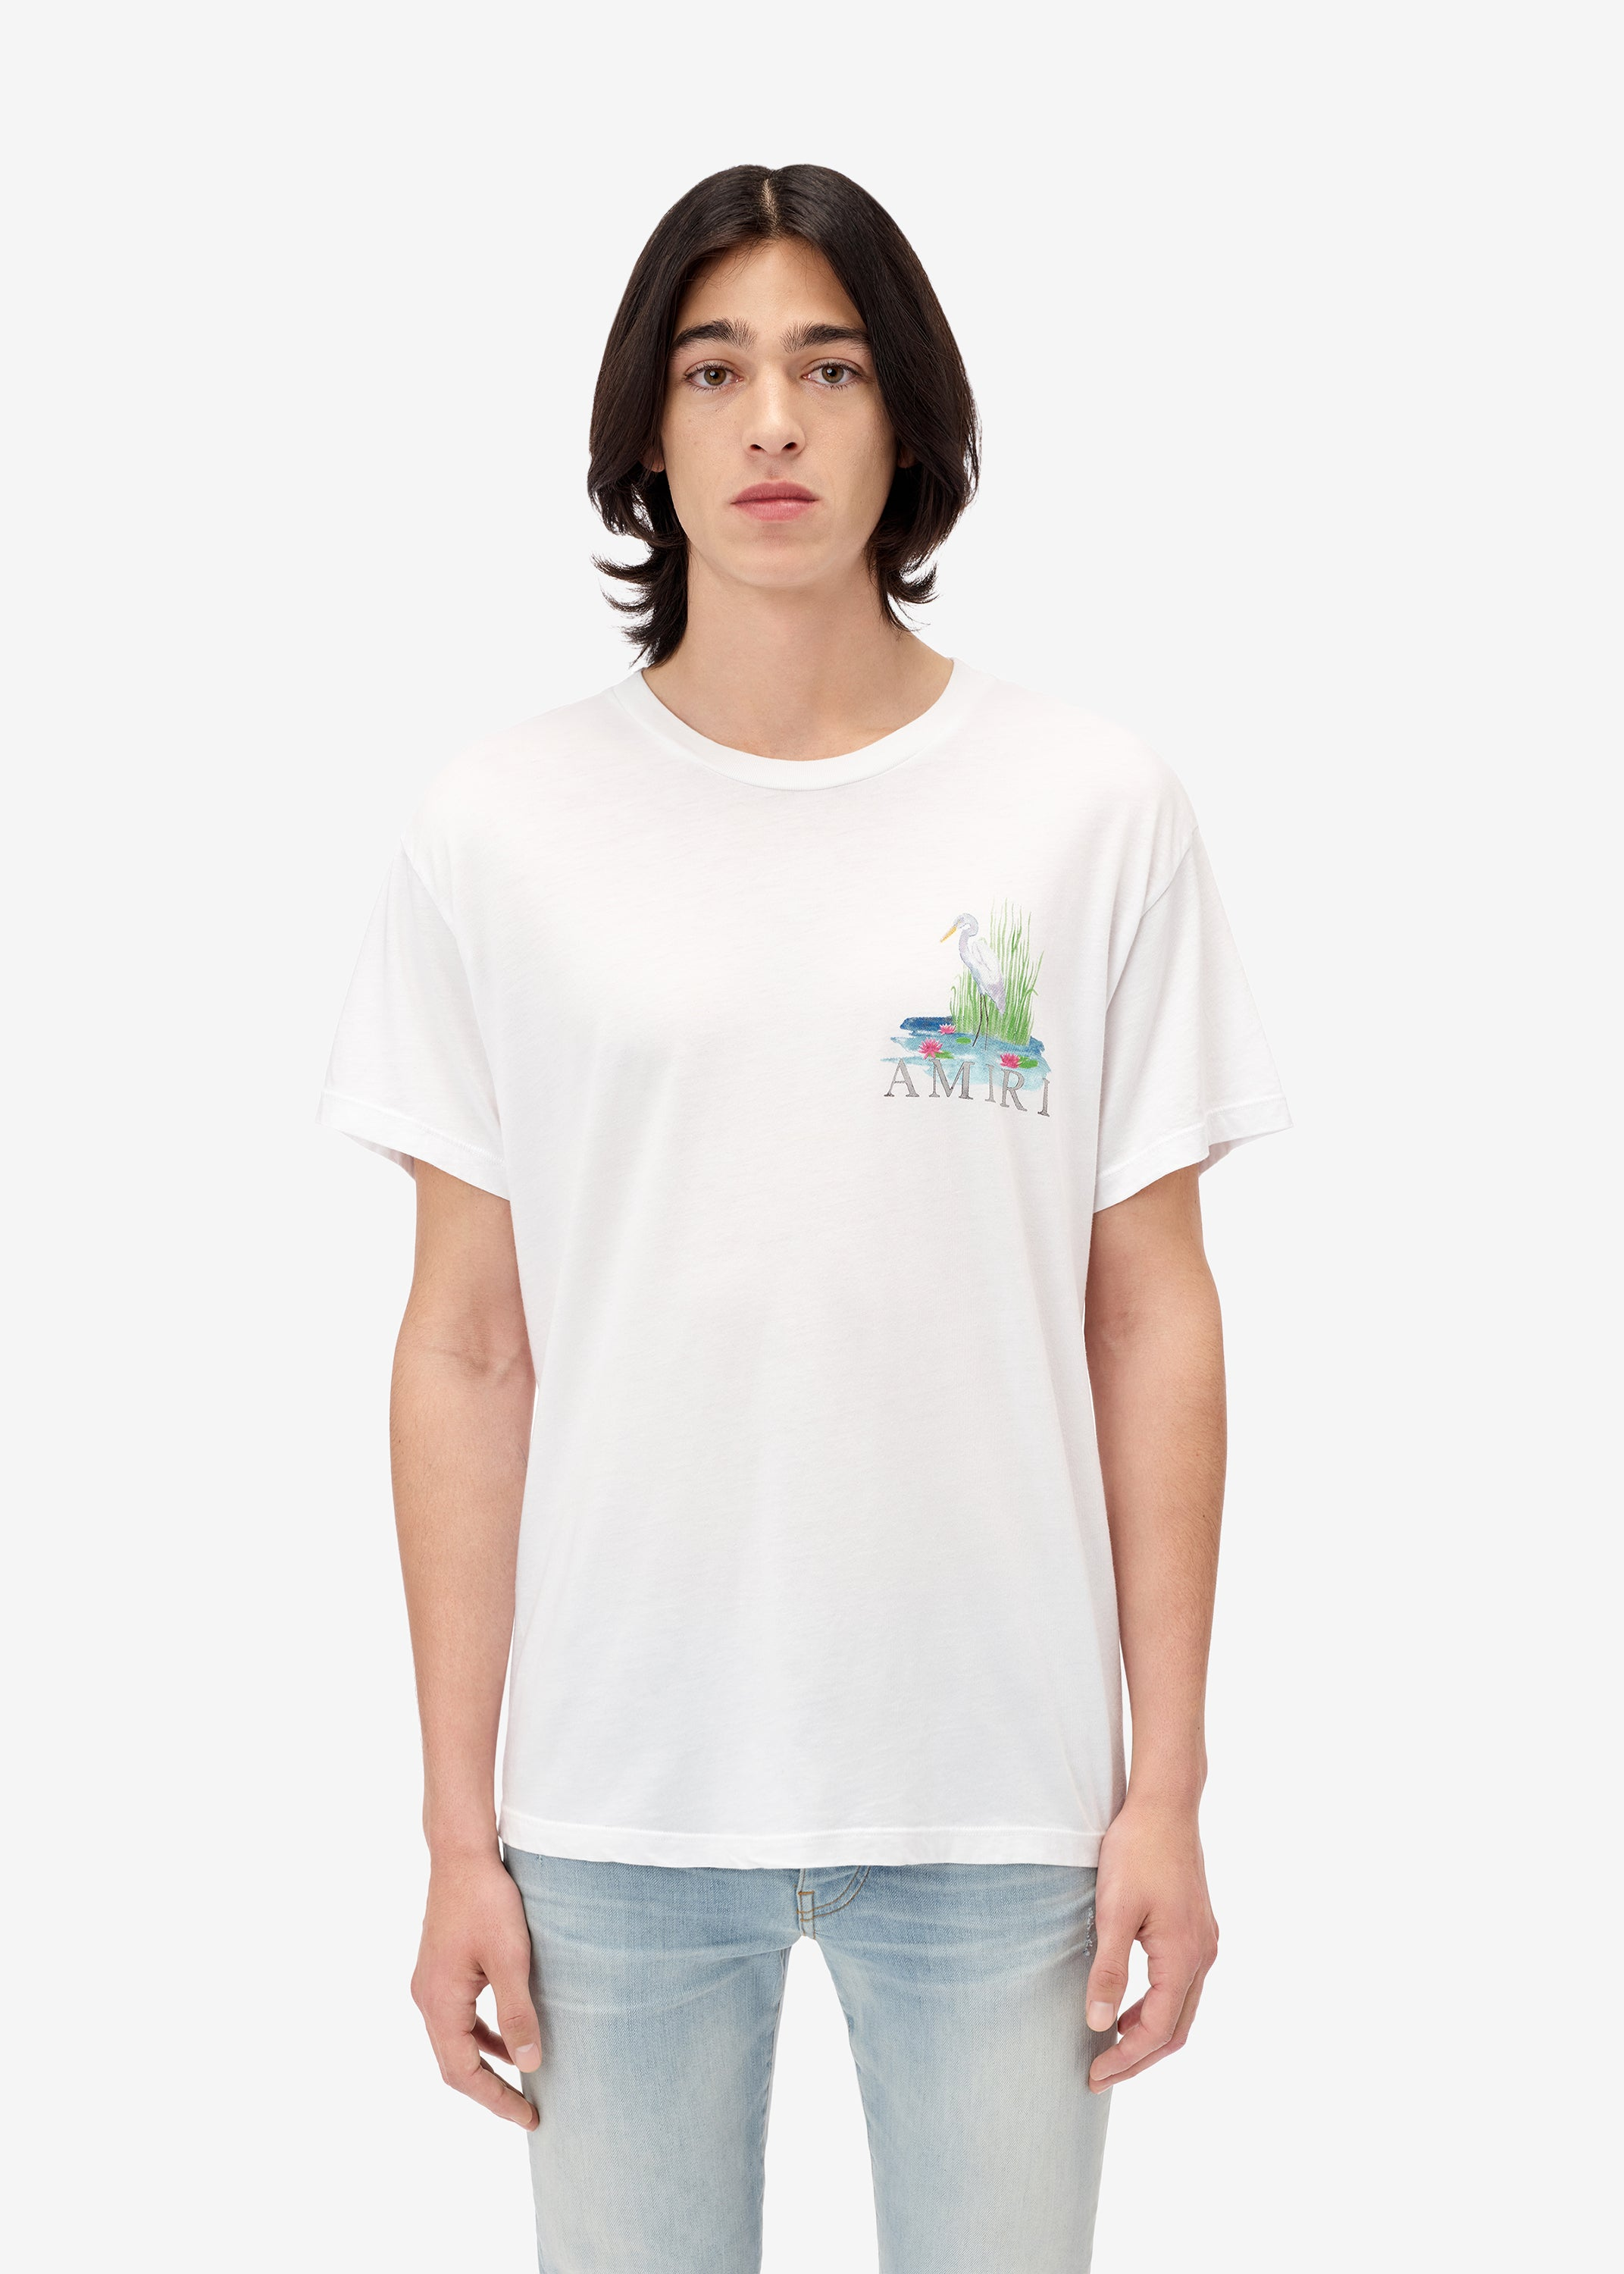 standing-egret-tee-web-exclusive-white-image-1